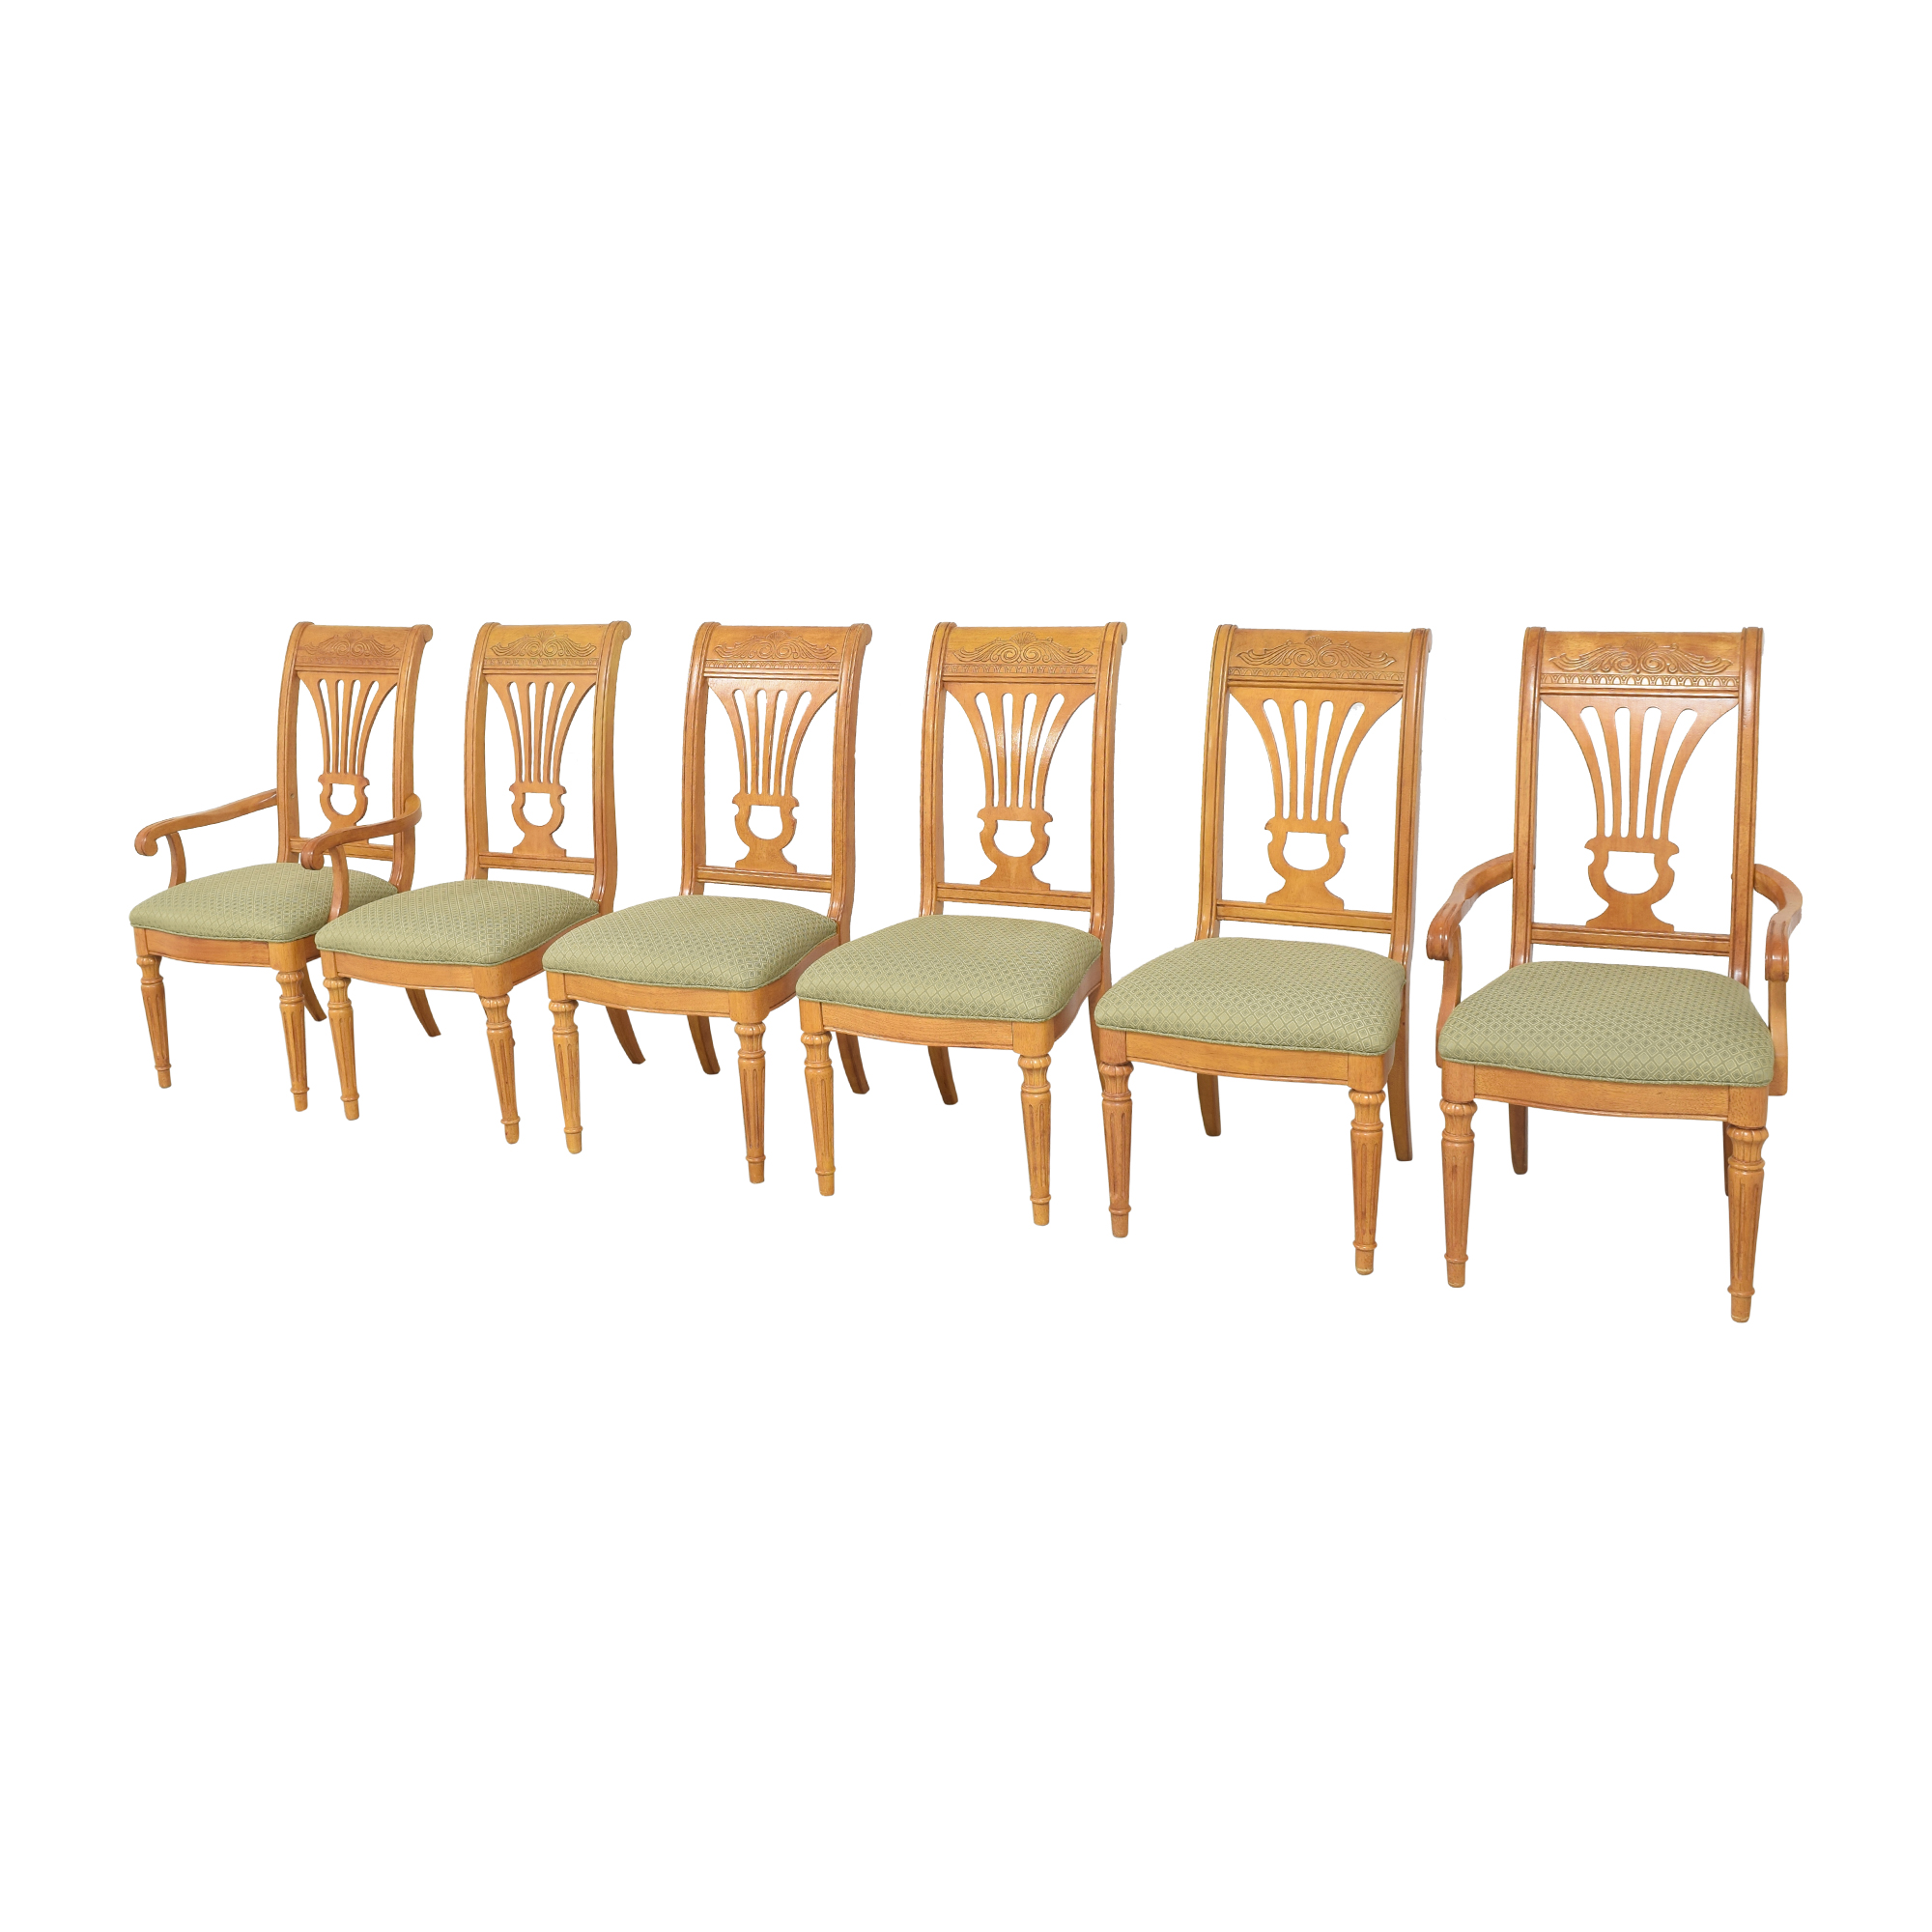 Universal Furniture Universal Furniture Upholstered Dining Chairs ma